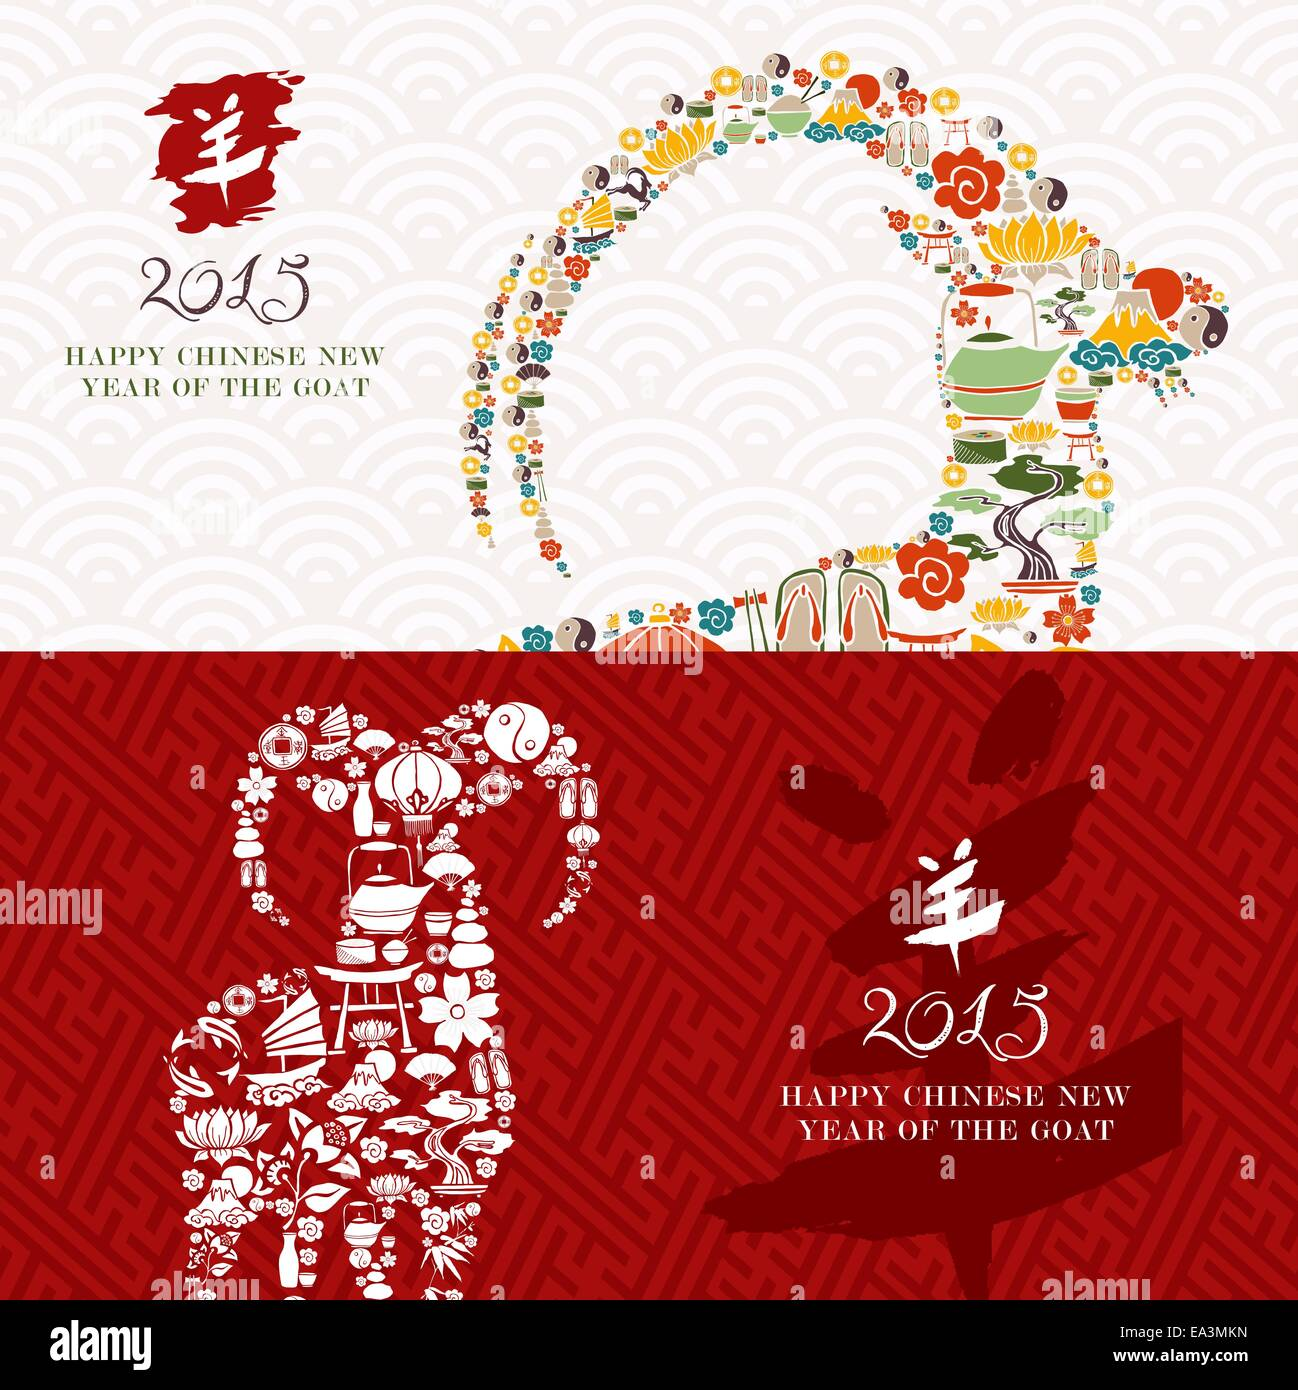 2015 chinese new year of the goat holidays greeting cards set with 2015 chinese new year of the goat holidays greeting cards set with oriental icons composition eps10 vector file organized in la m4hsunfo